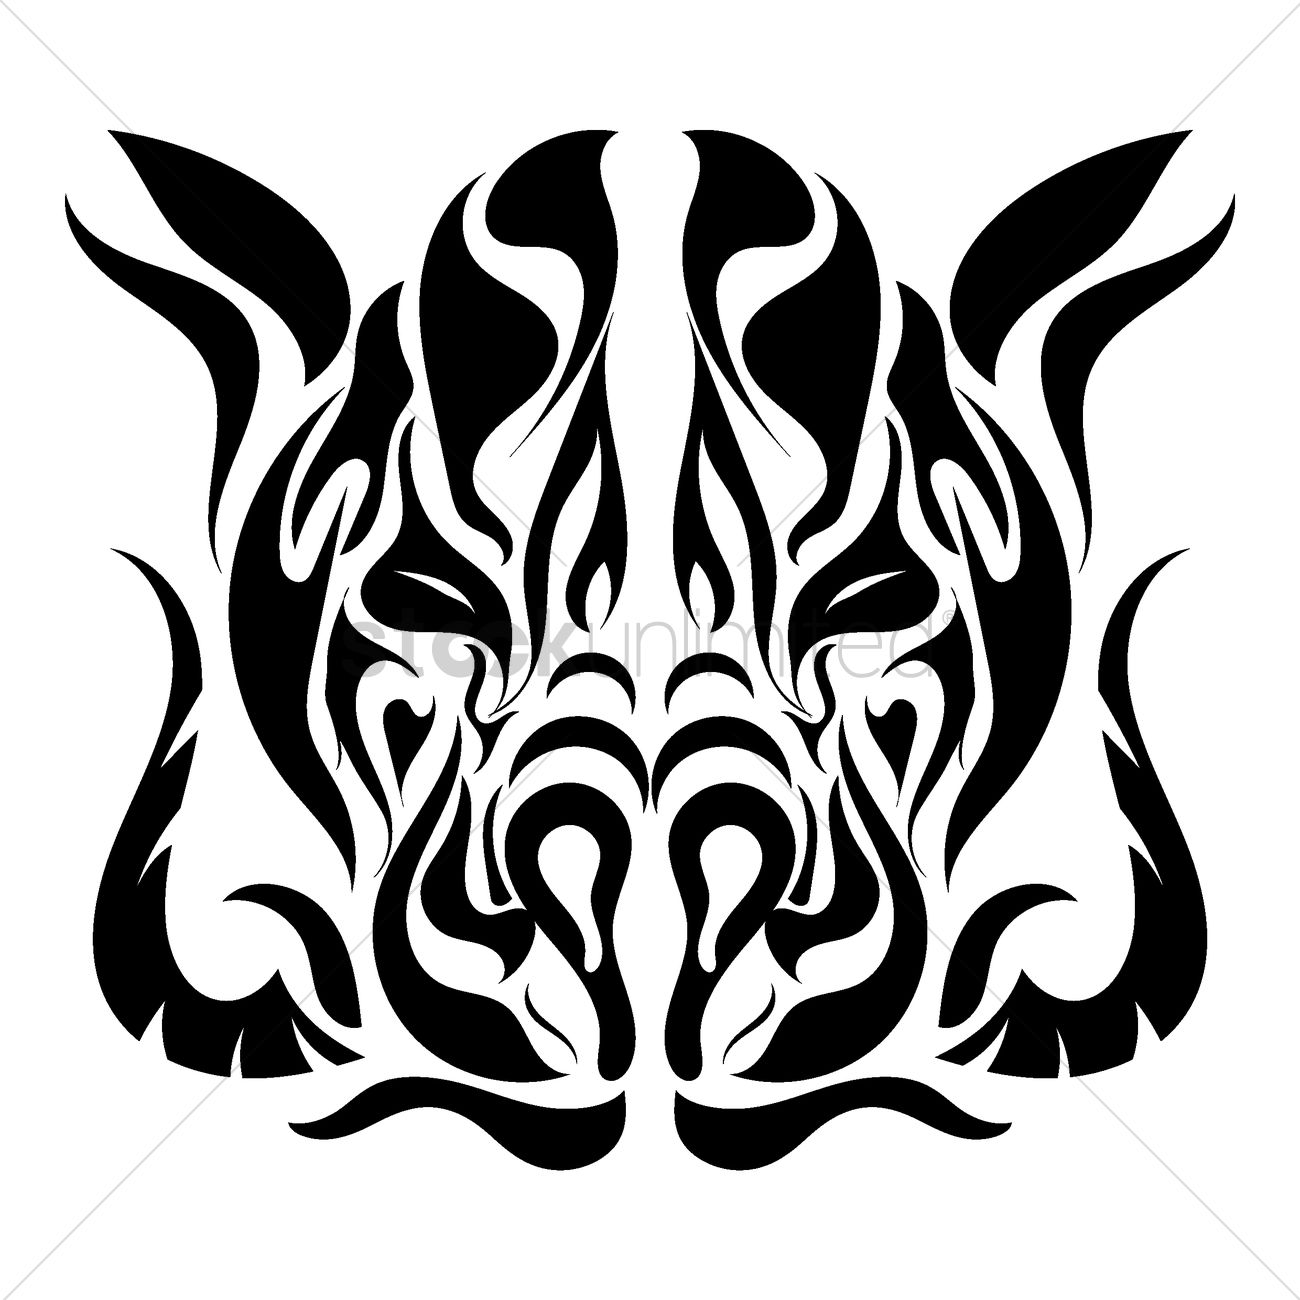 wild boar tattoo design vector image 1433395 stockunlimited rh stockunlimited com bear tattoo designs for men Wild Boar with Chains Tattoo